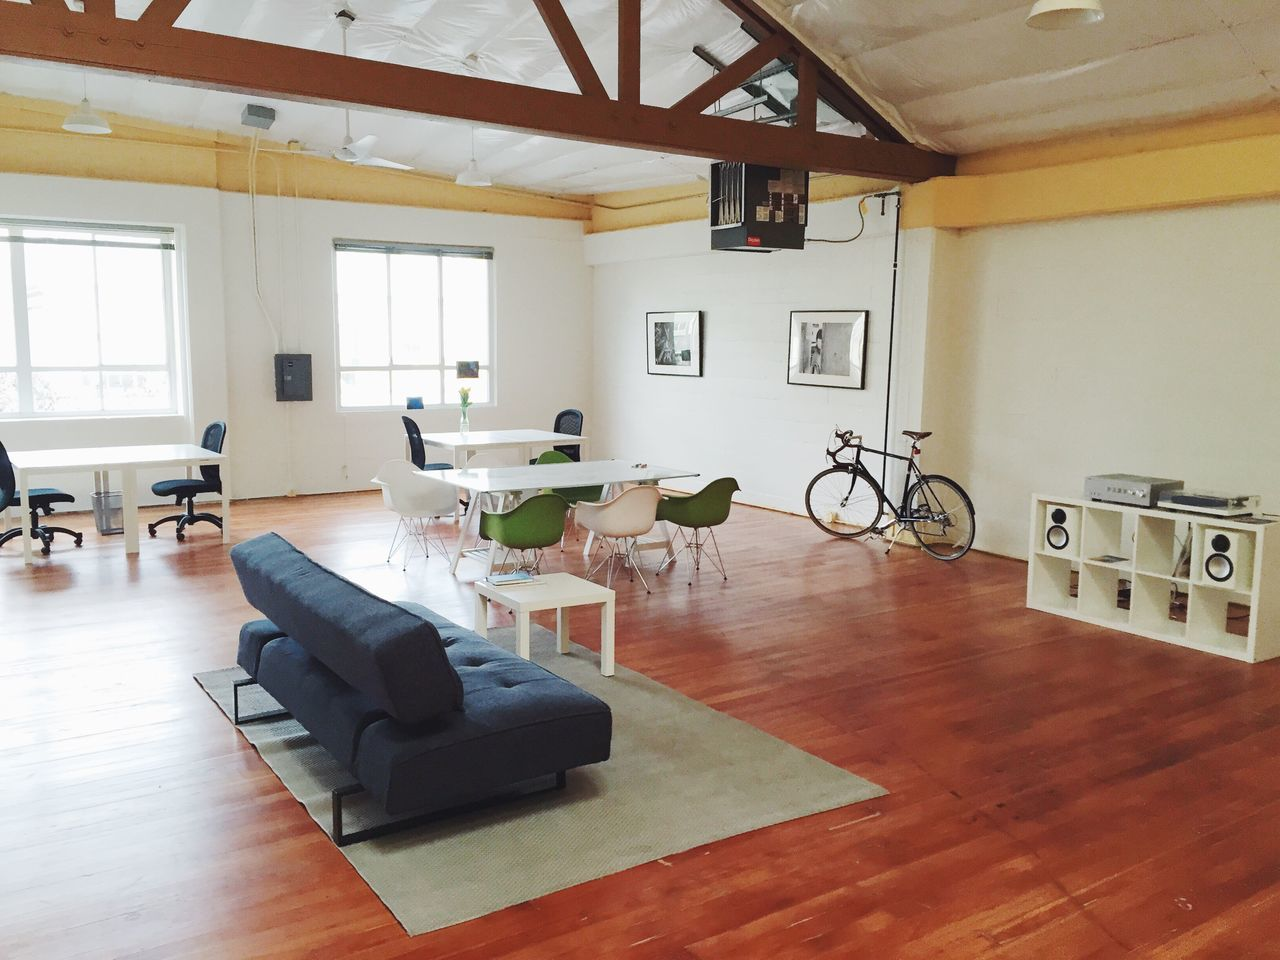 View Of Empty Large Room With Furniture And Bicycle